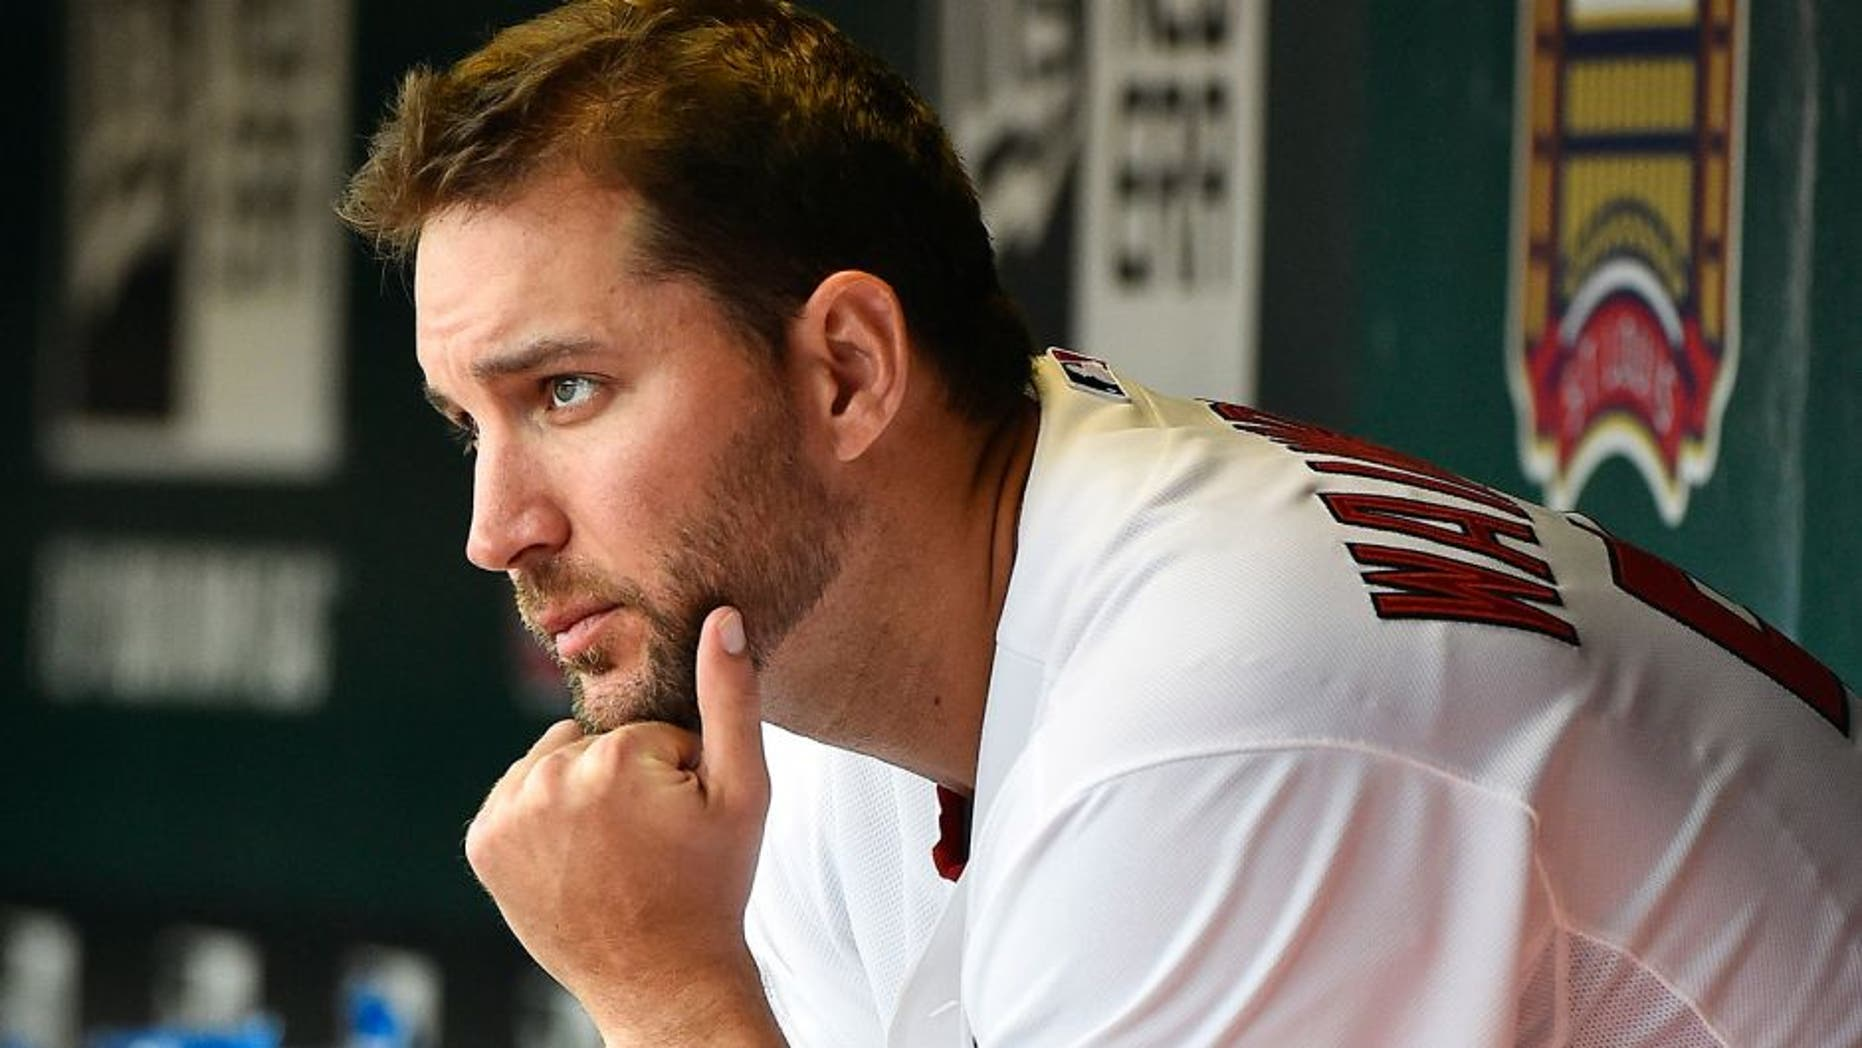 Apr 13, 2015; St. Louis, MO, USA; St. Louis Cardinals starting pitcher Adam Wainwright (50) sits in the dugout during the game against the Milwaukee Brewers at Busch Stadium. Mandatory Credit: Jasen Vinlove-USA TODAY Sports